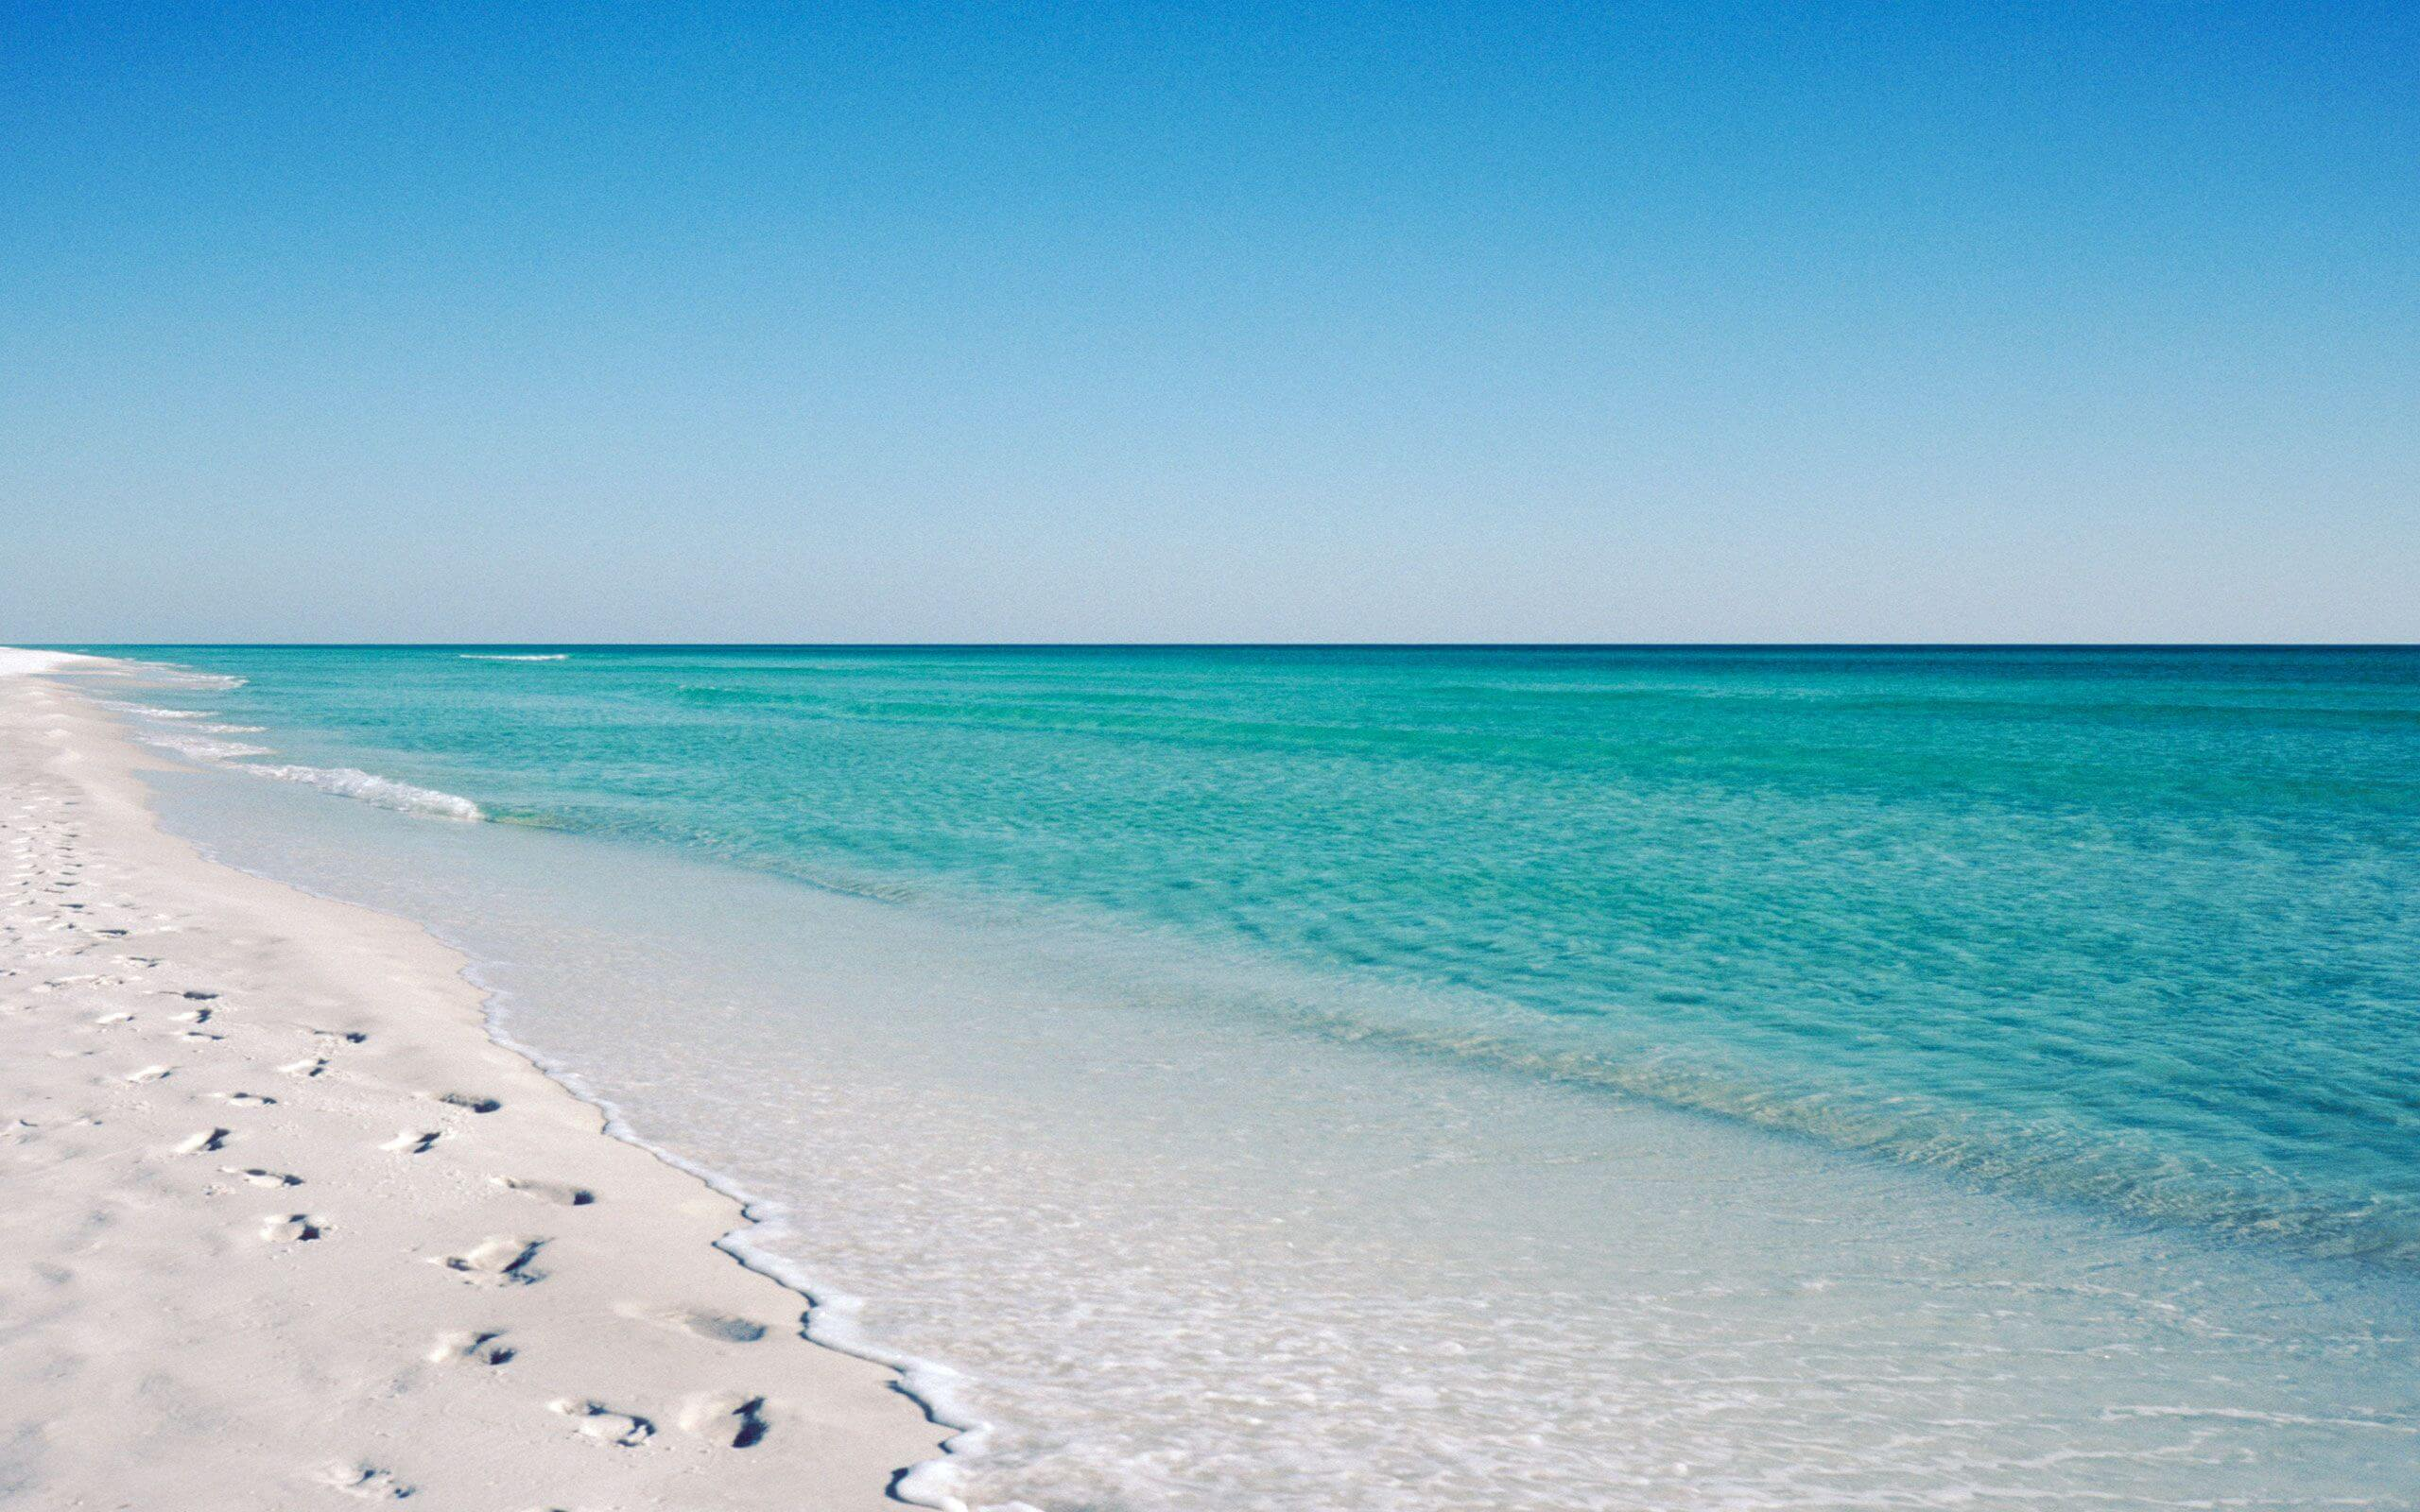 Clear waters on the beach